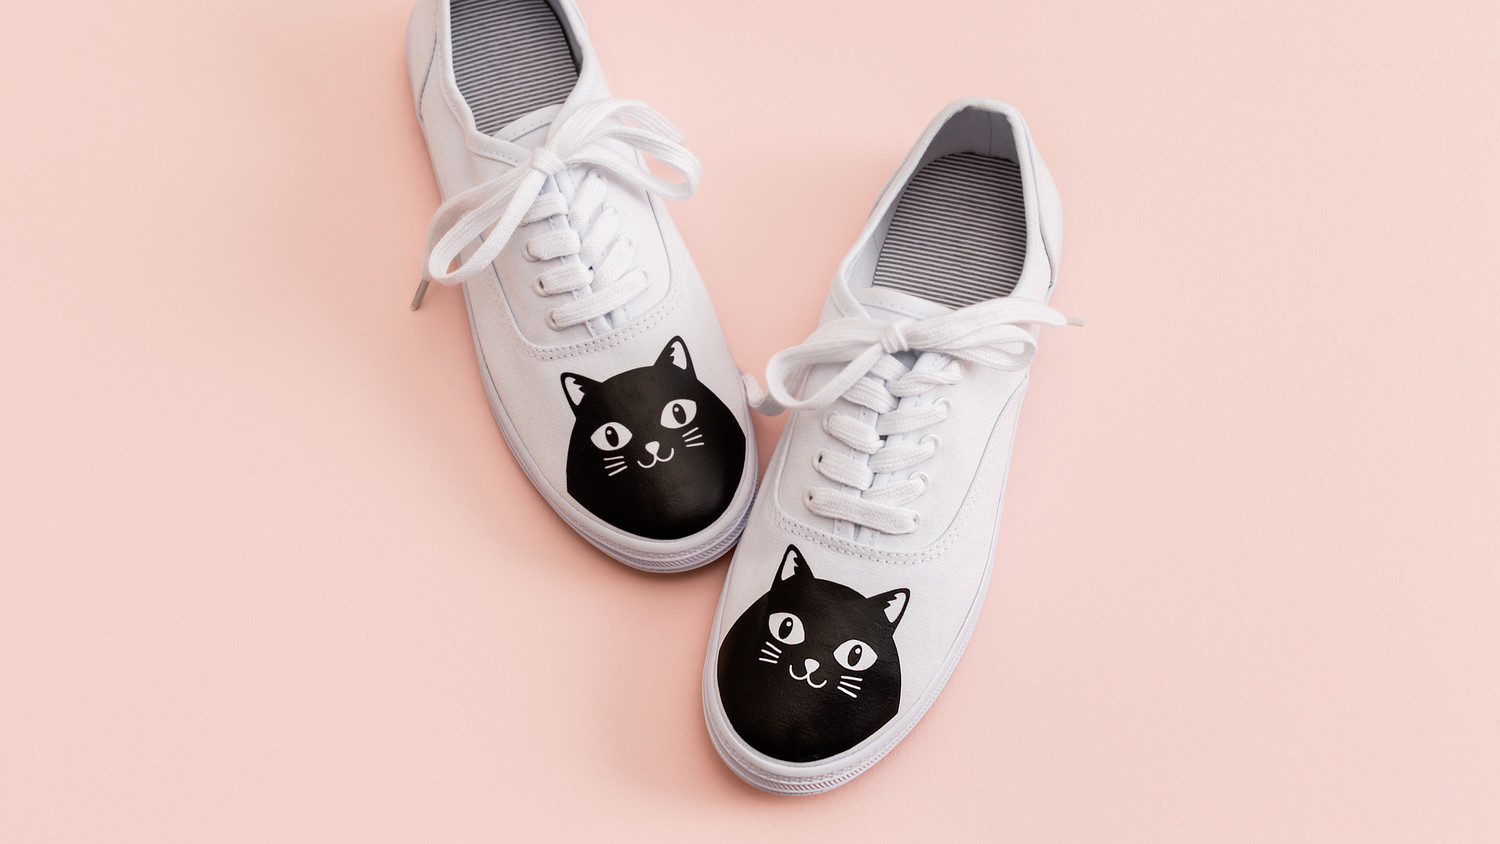 Martha Stewart Cricut® Kitten Sneakers